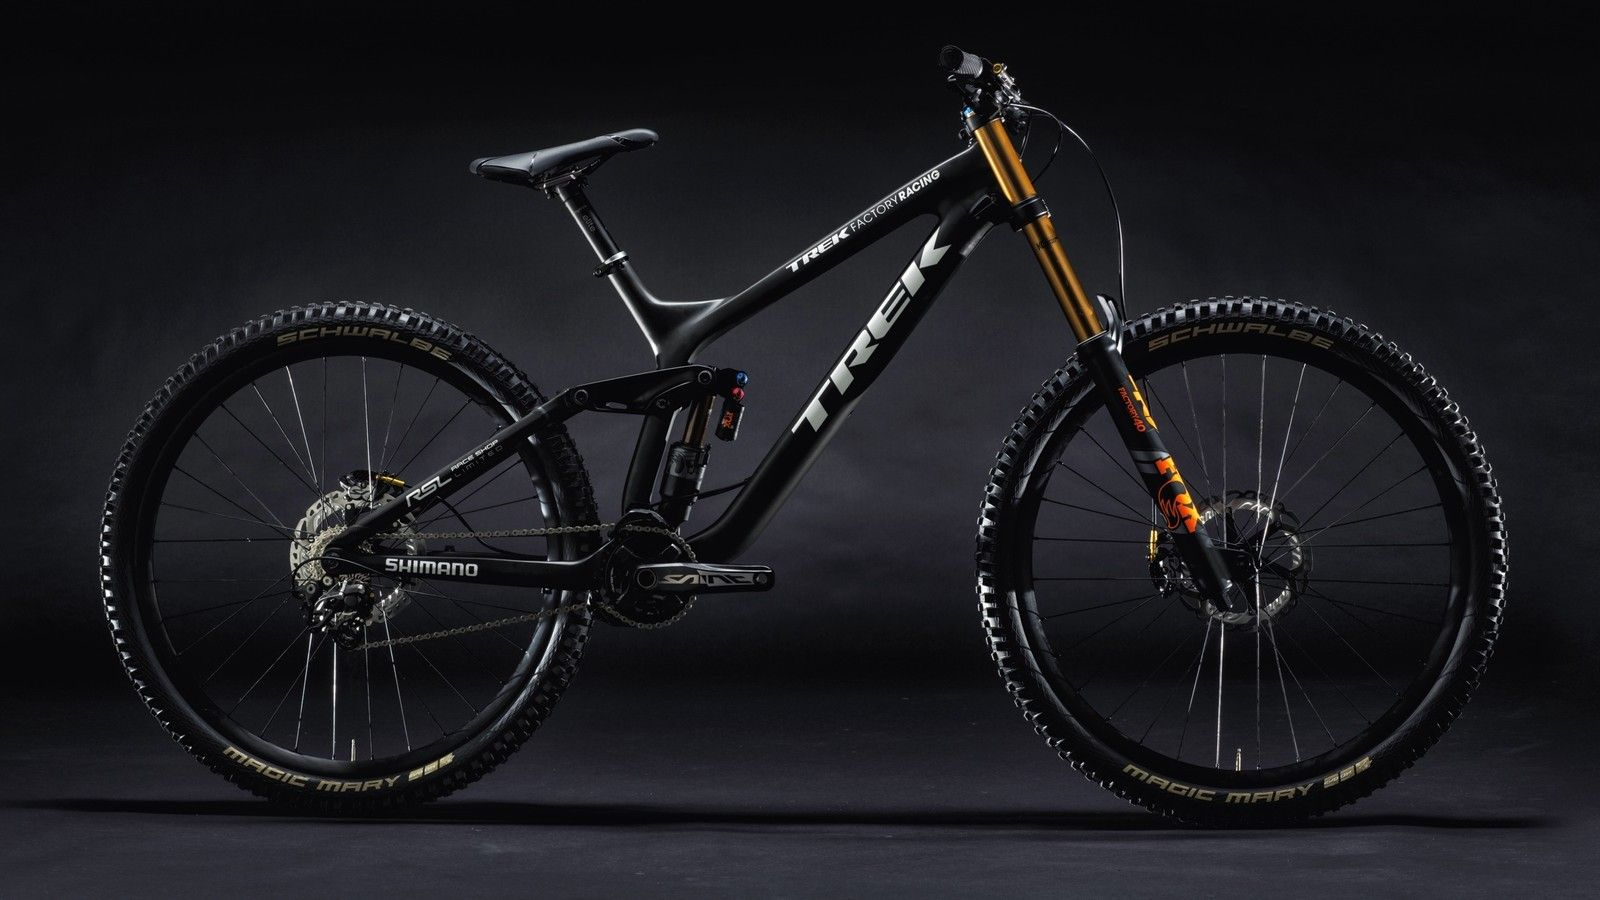 You Can Have A 29er Downhill Bike Trek Introduces The New Session 27 5 And Session 29